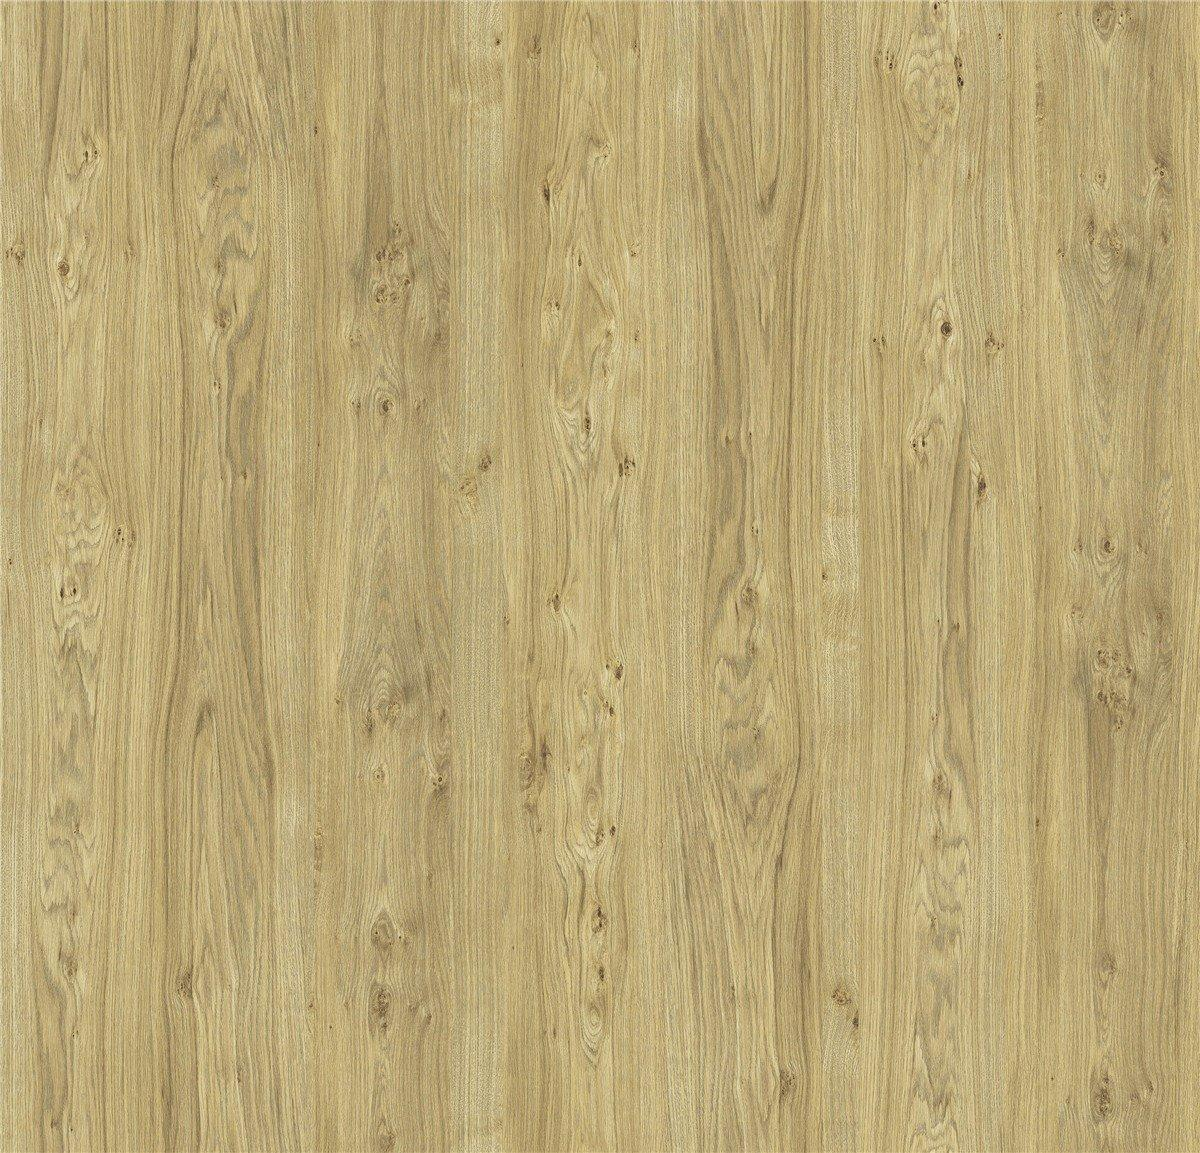 professional decorative contact paper for cabinets customized for master room-1